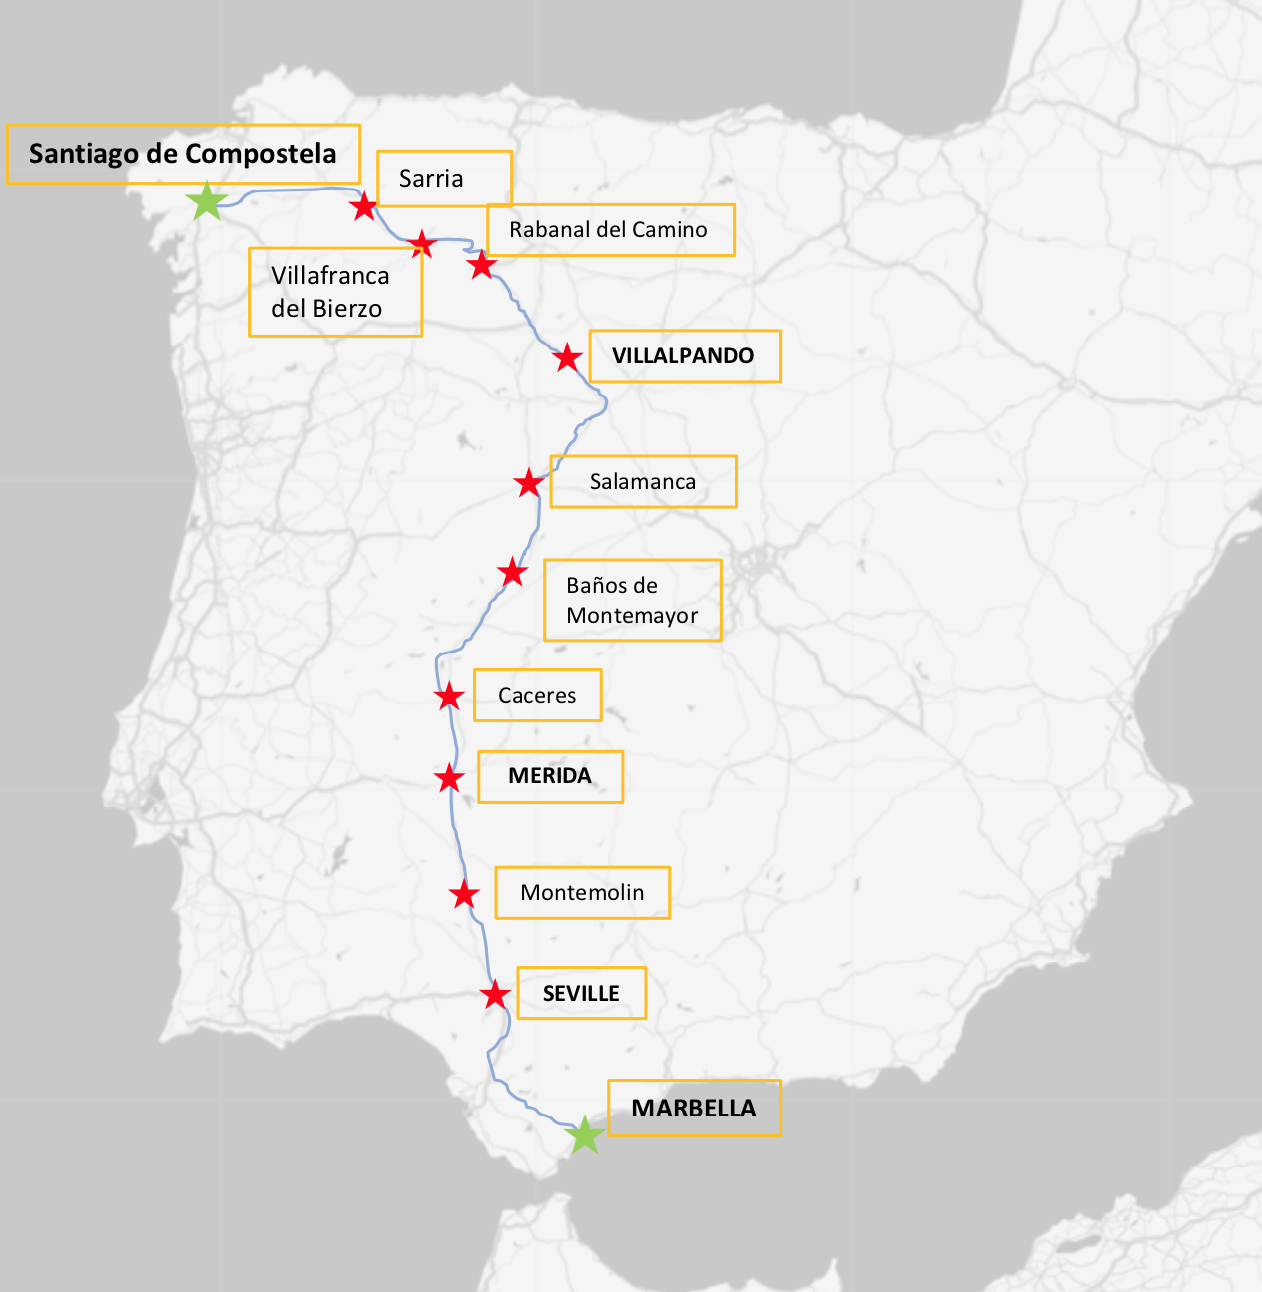 We will ride this route. 1,200 kilometers beginning on April 20, 2019 until we finish in Marbella on May 3, 2019.